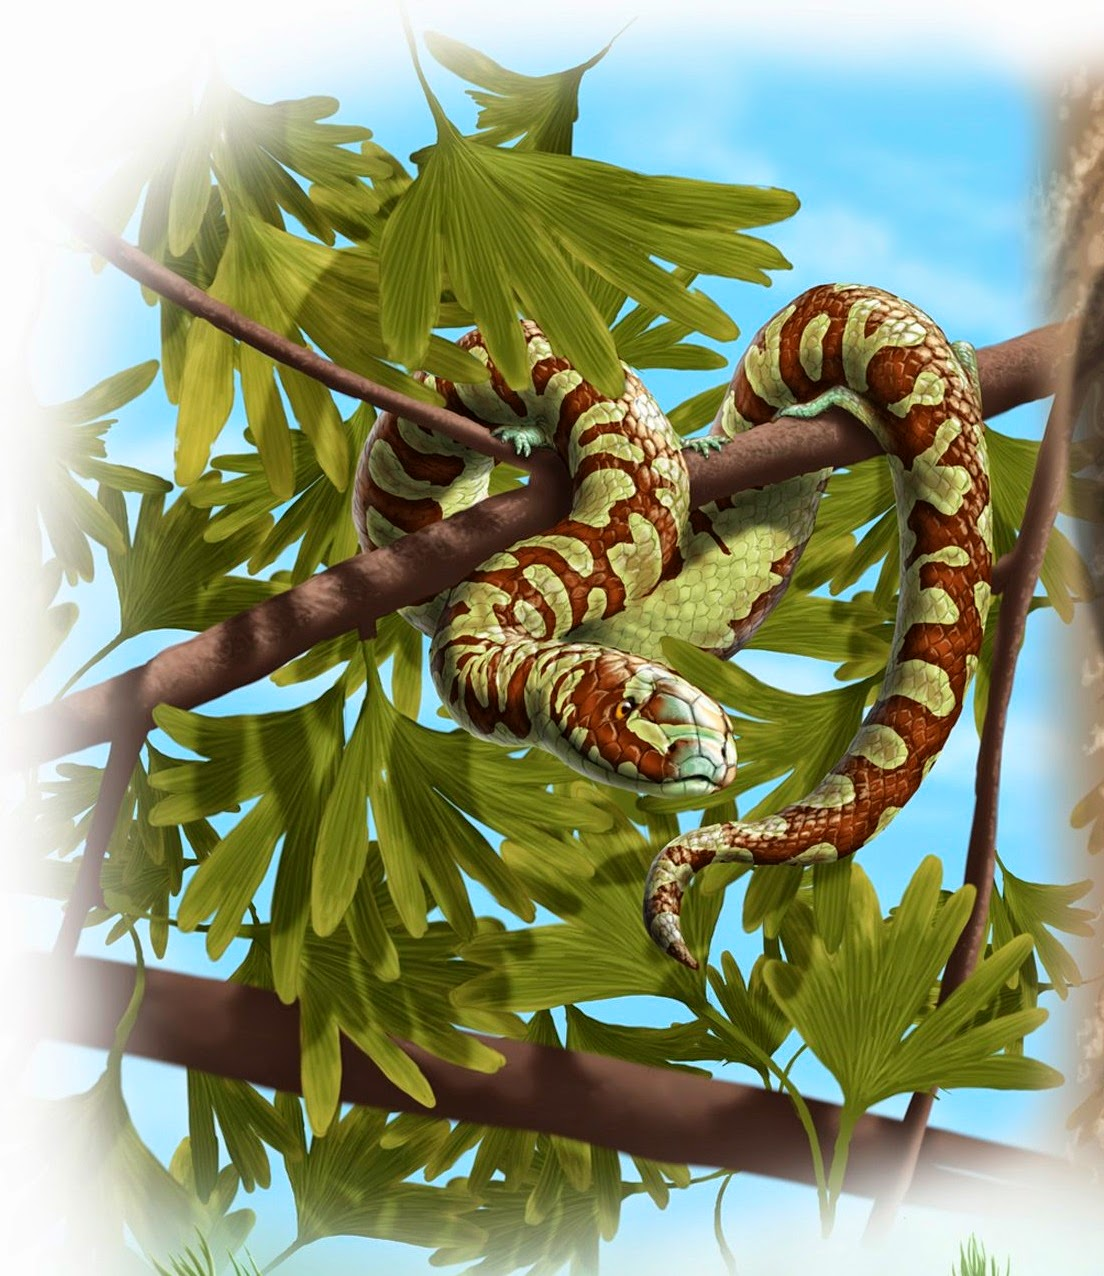 The Oldest Known Snakes from the Middle Jurassic Lower Cretaceous provide insights on Snake Evolution  Nature Communications     DOI          ncomms